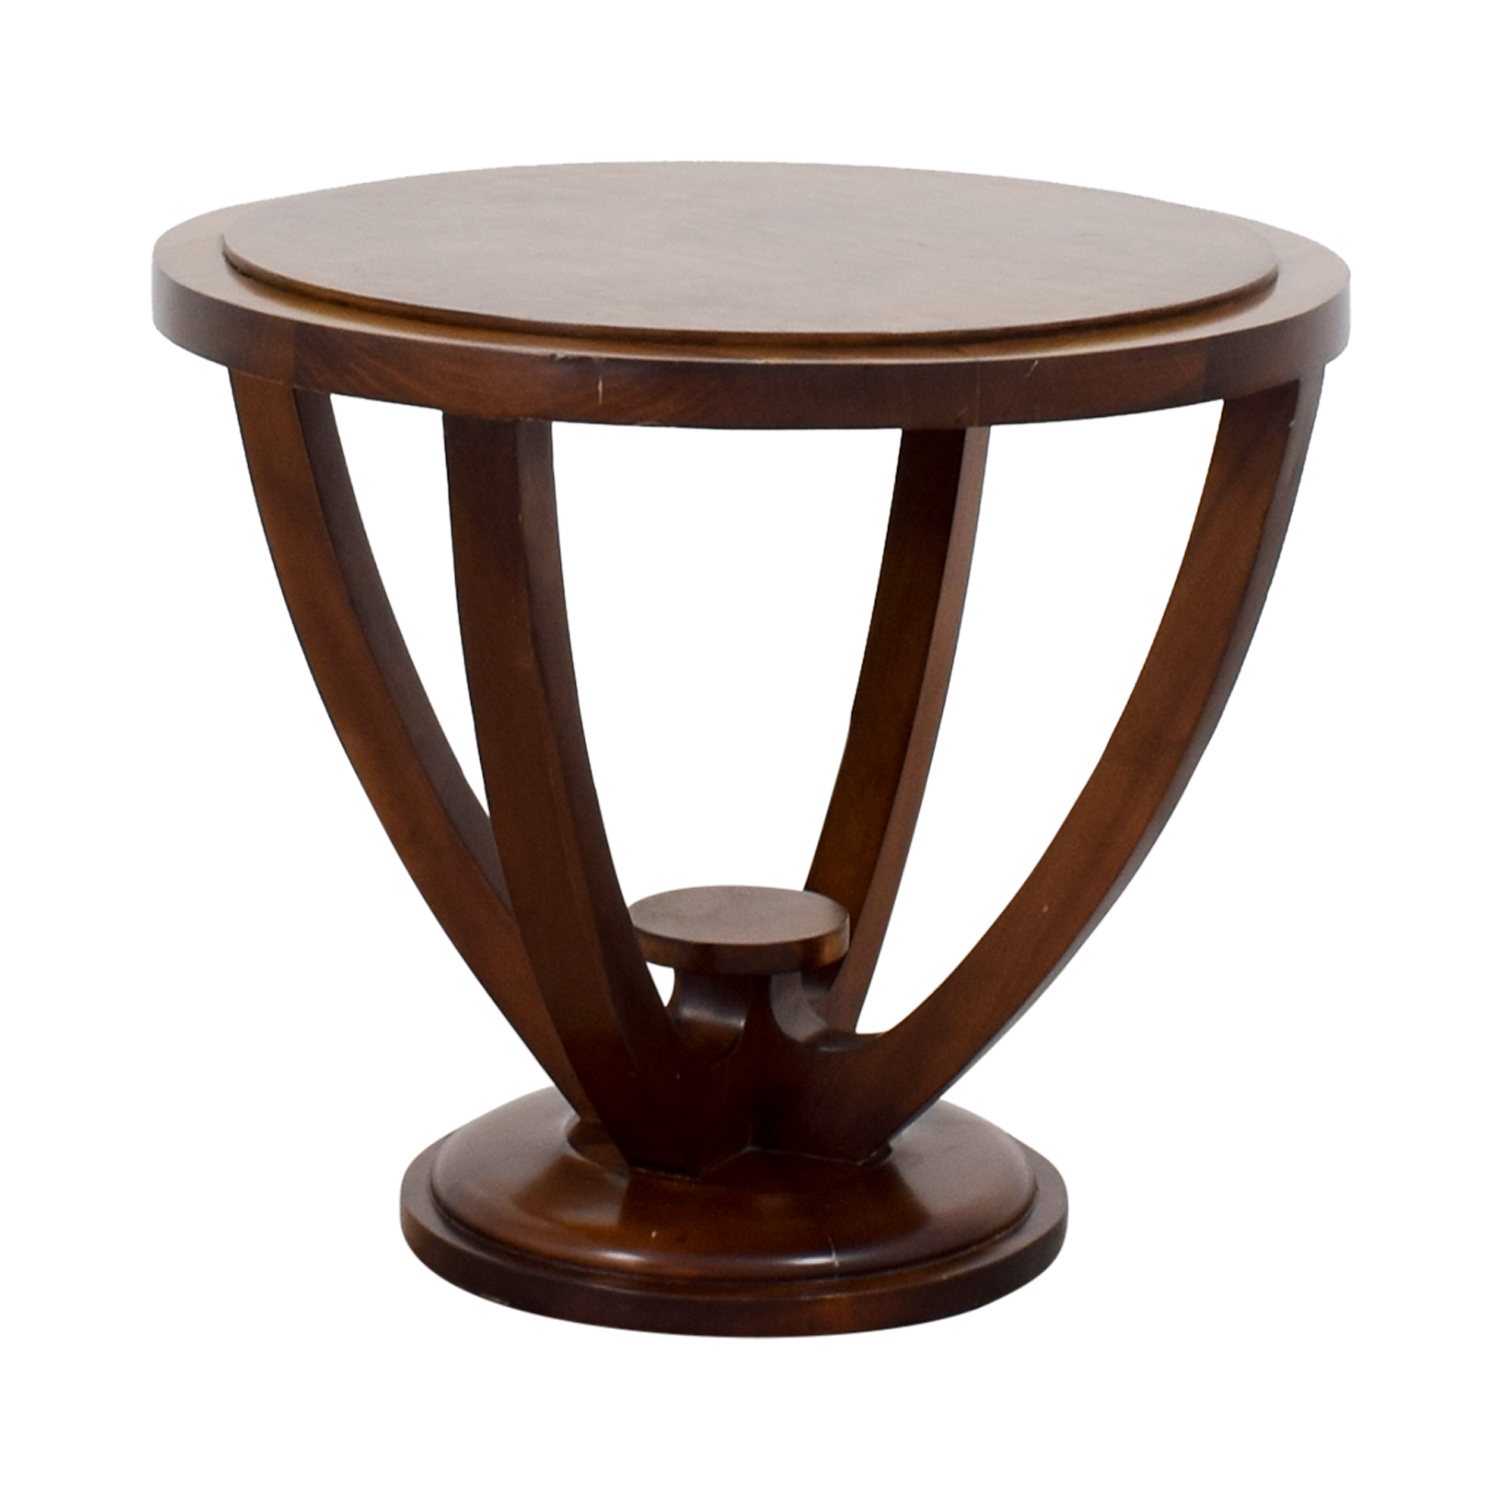 Furniture Masters Furniture Masters Round Wood End Table nj